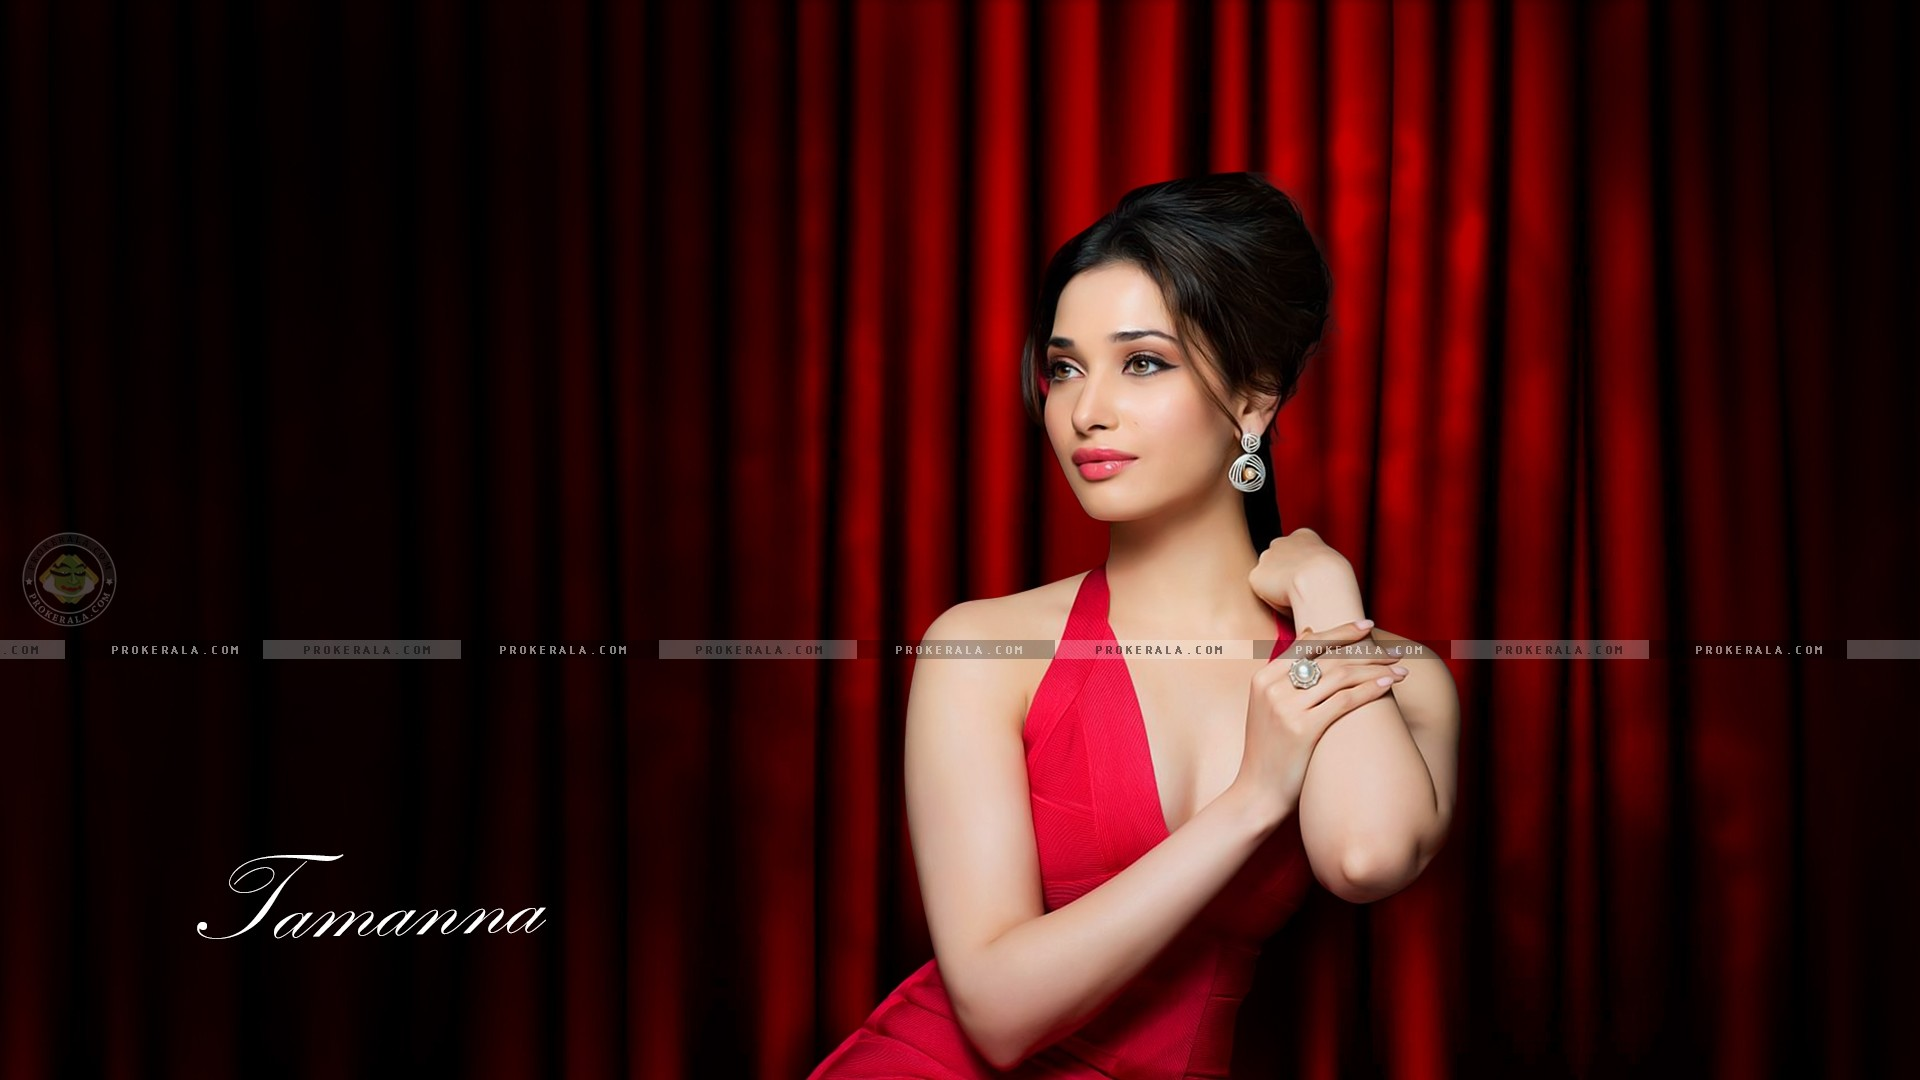 Tamanna Wallpapers Galleries 60 Images